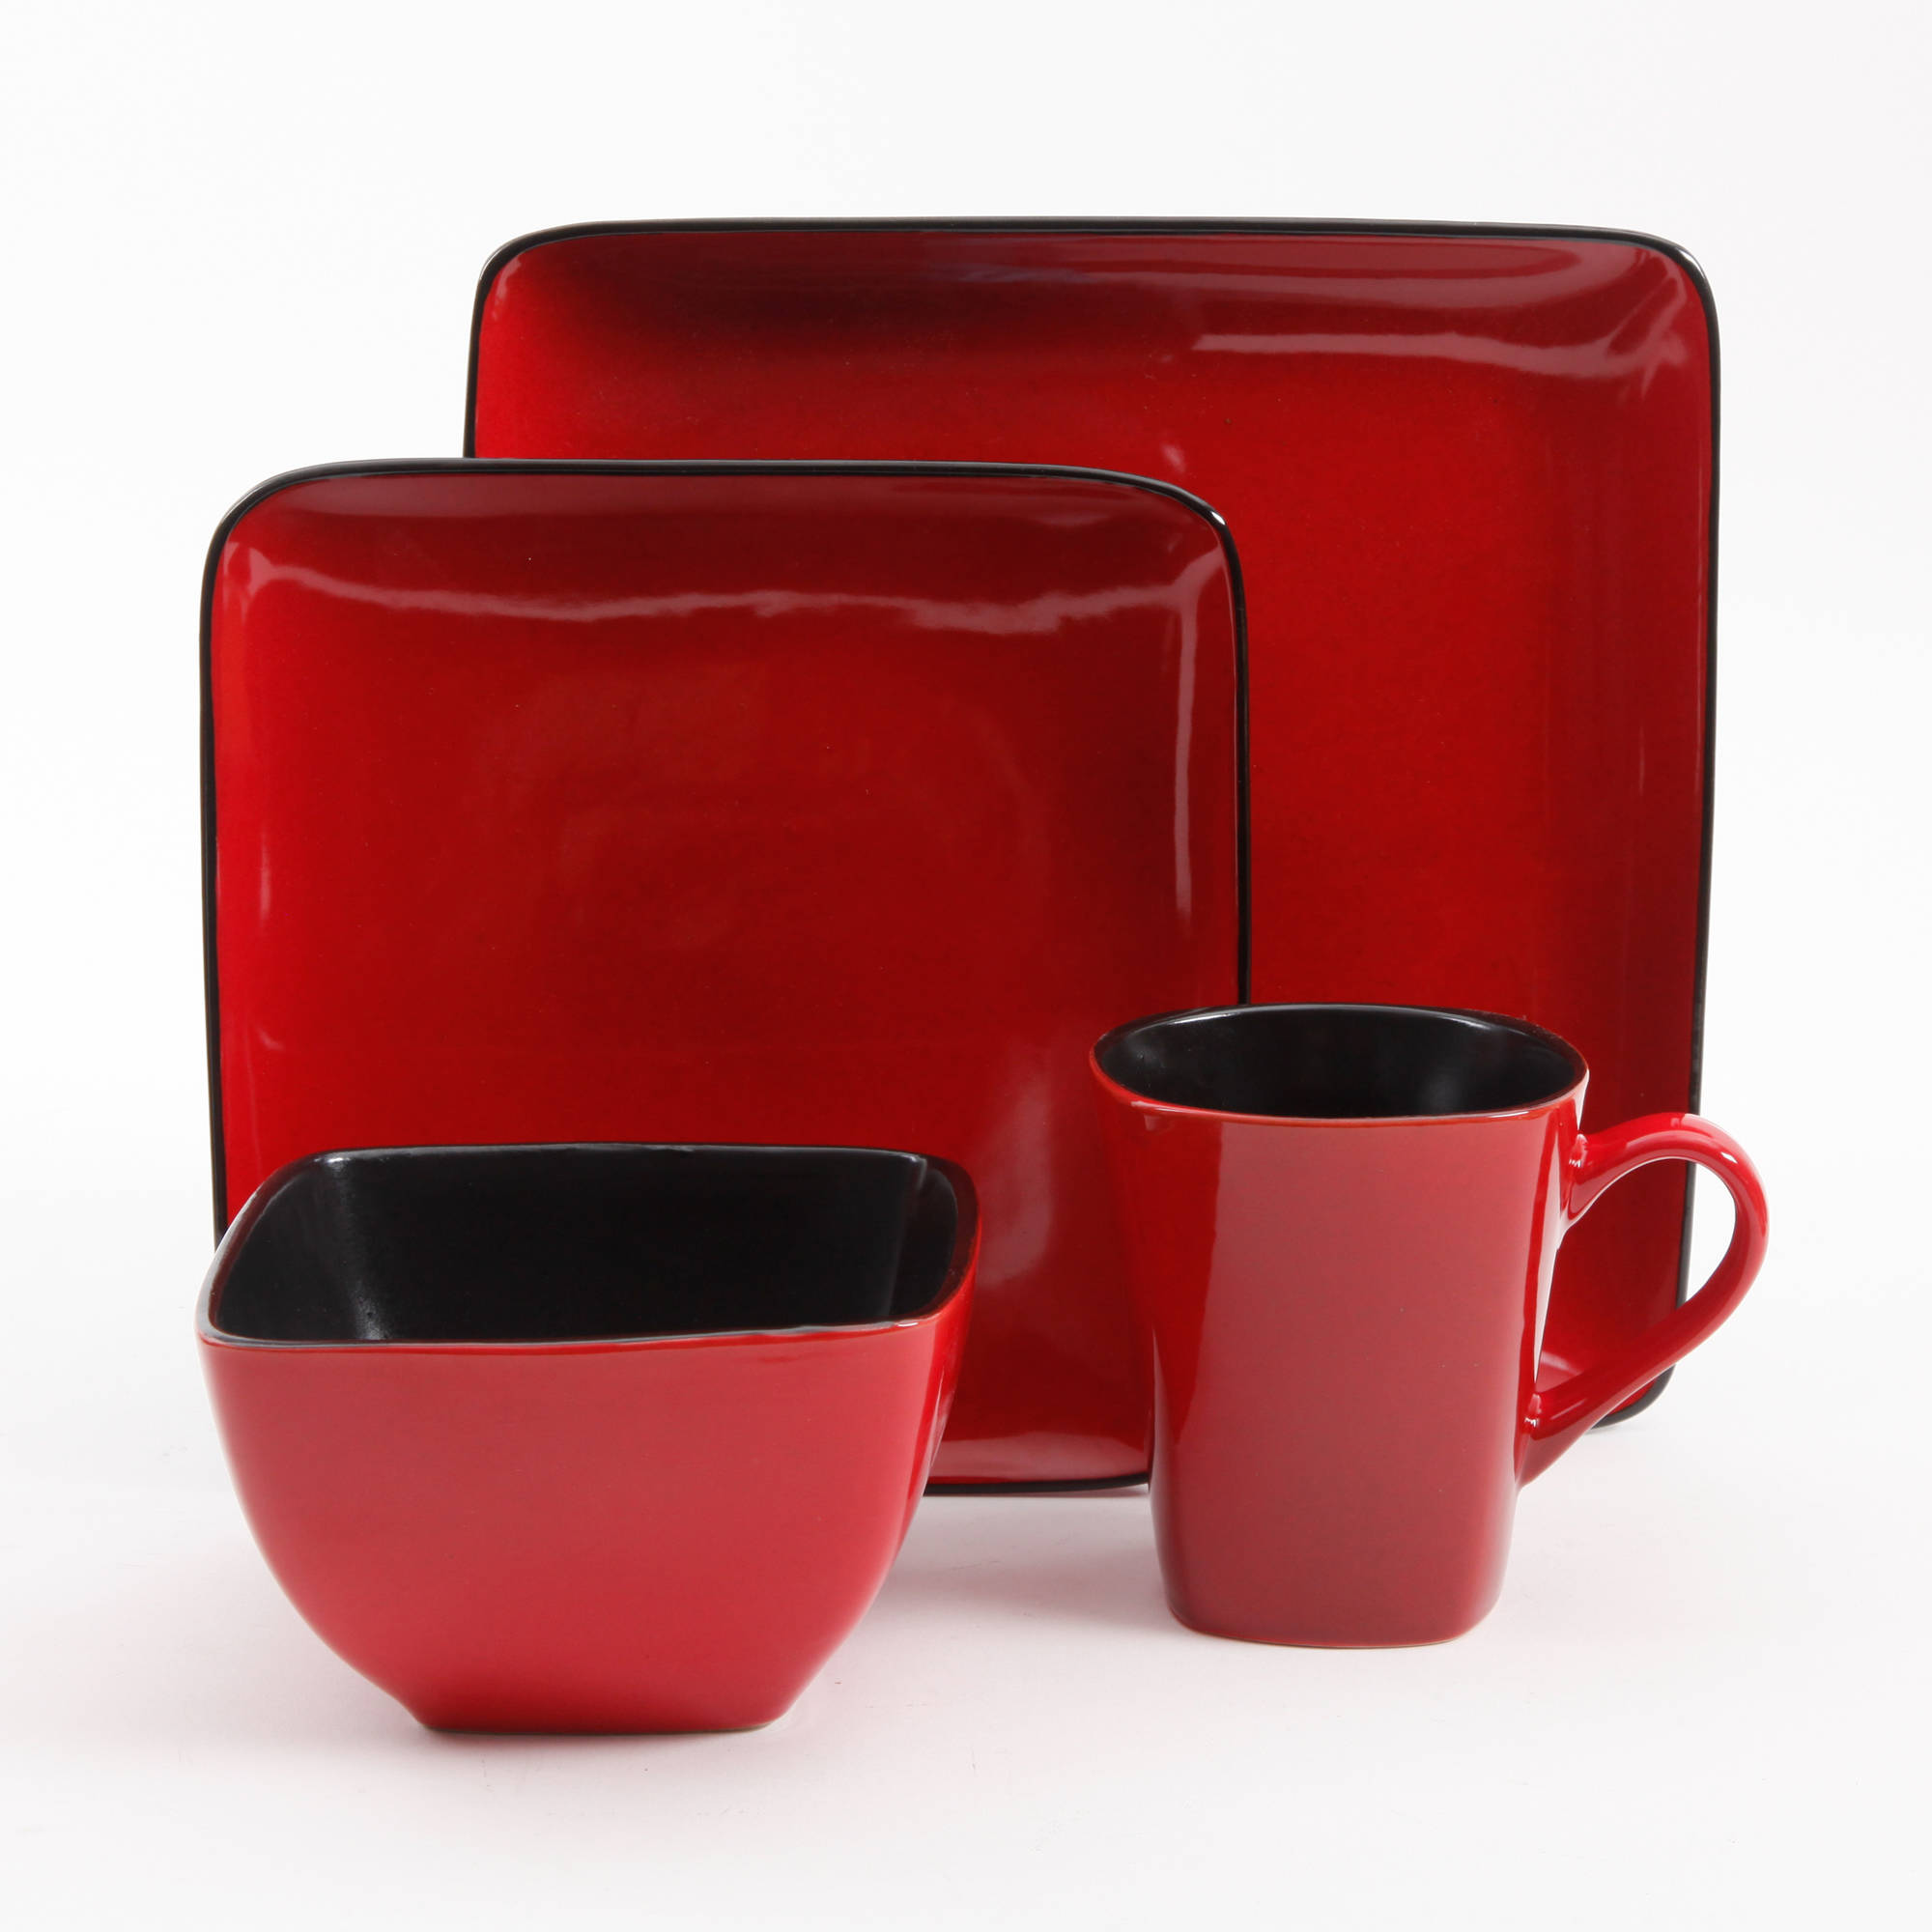 Better Homes and Gardens Rave 16-Piece Square Dinnerware Set Red  sc 1 st  eBay & Better Homes and Gardens Rave 16-Piece Square Dinnerware Set Red | eBay